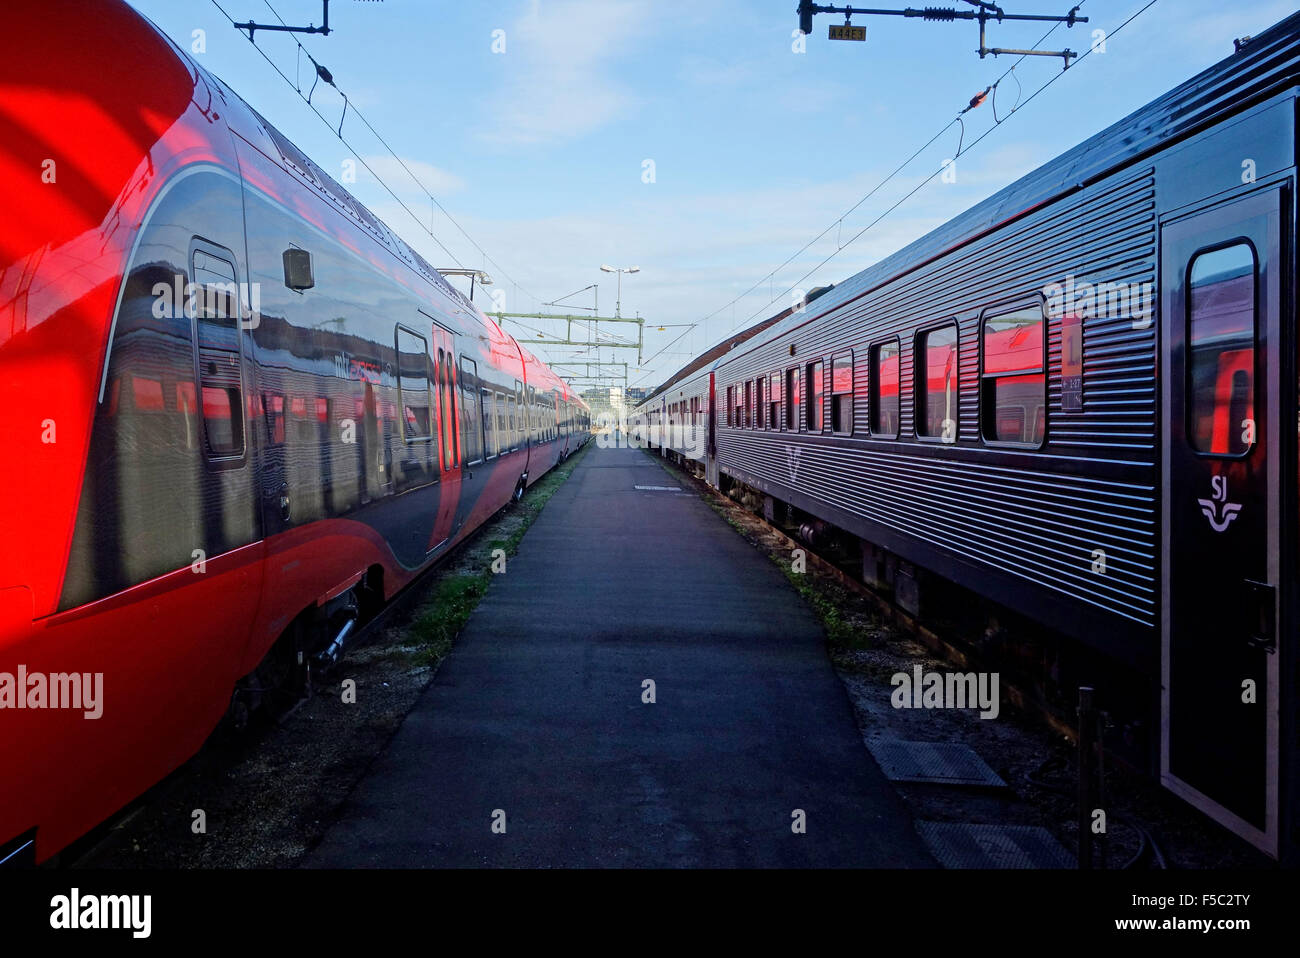 Two railway trains on each side of an empty platform in Central station in Göthenburg, Sweden - Stock Image